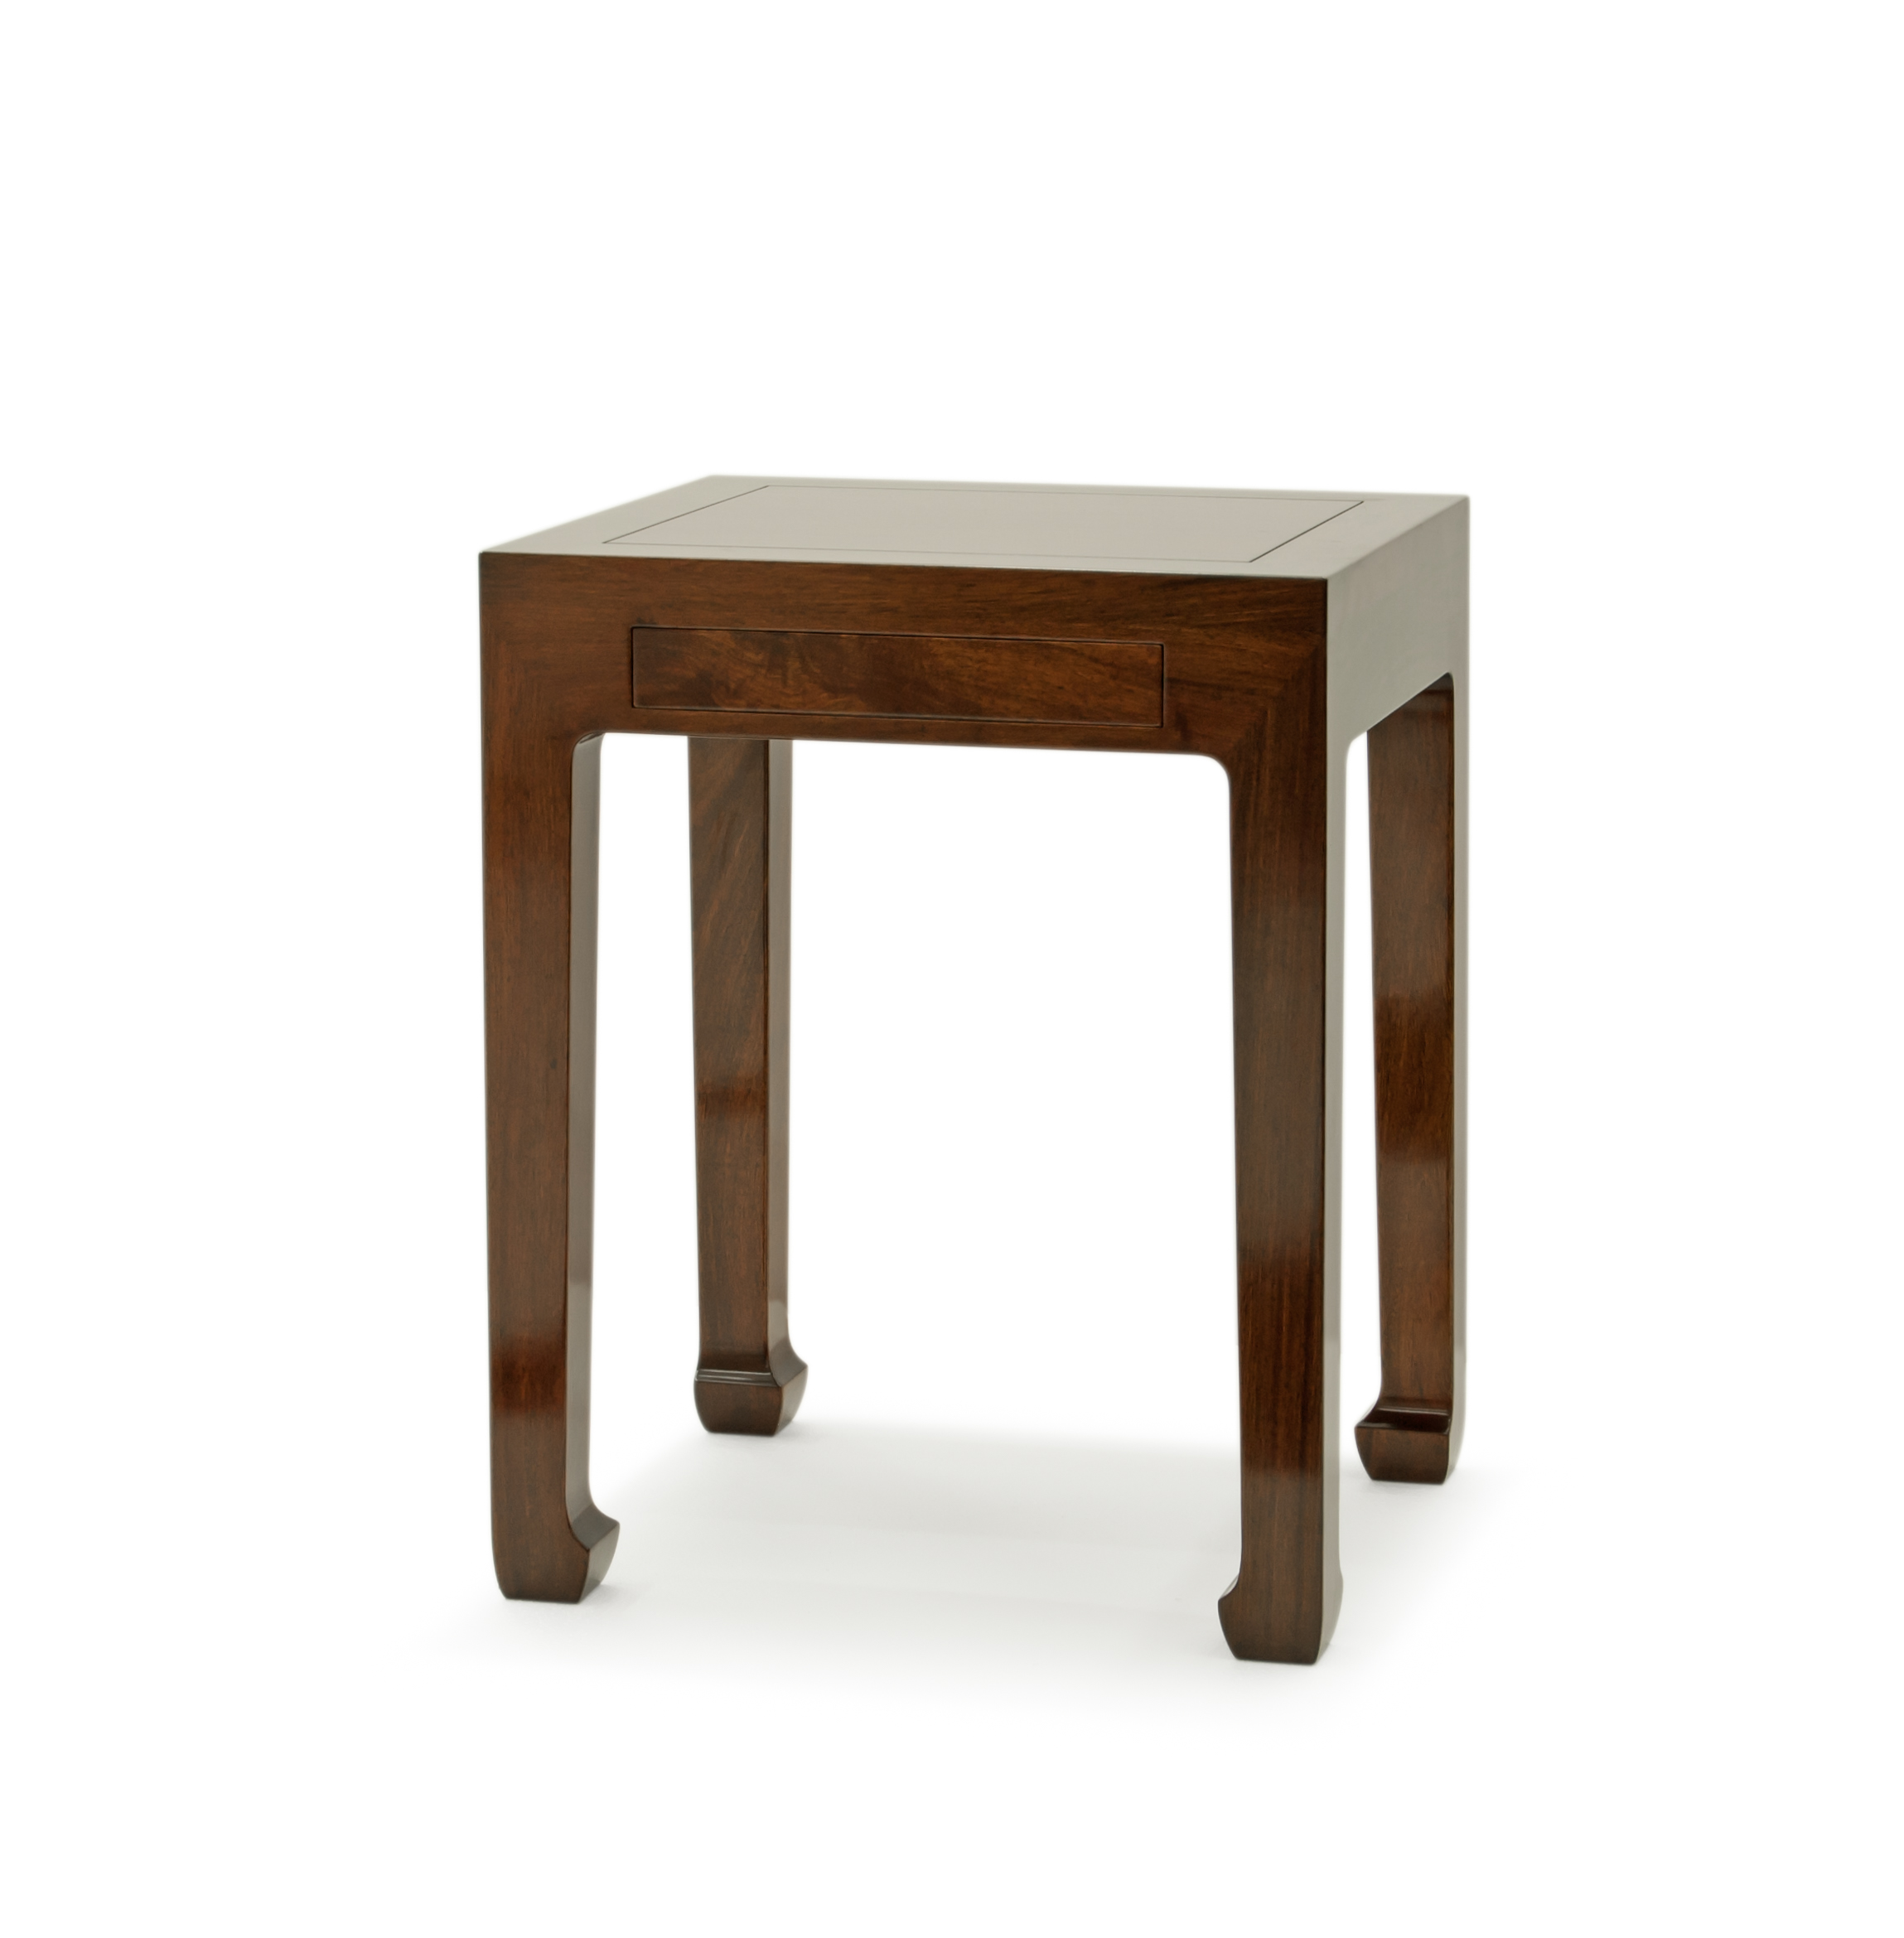 ....chinese ming style furniture : low side table ..中式明式家具 : 矮台....